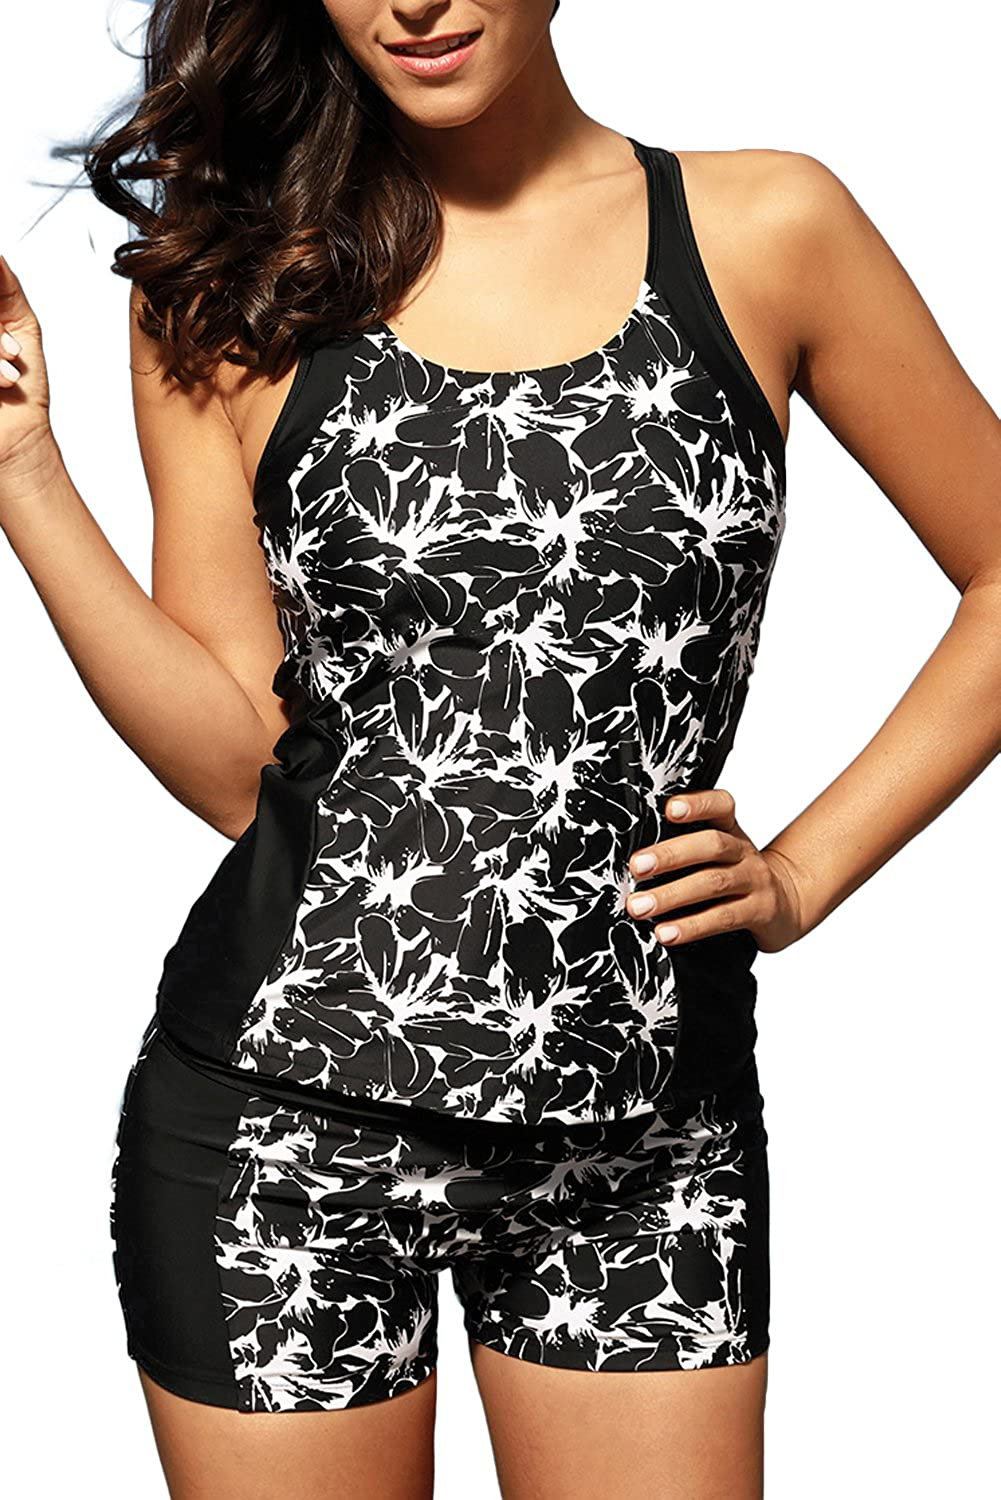 badbef05de Black tankini with contrast white floral print and solid panel splice. Tankini  top features adjustable straps and racerback ...